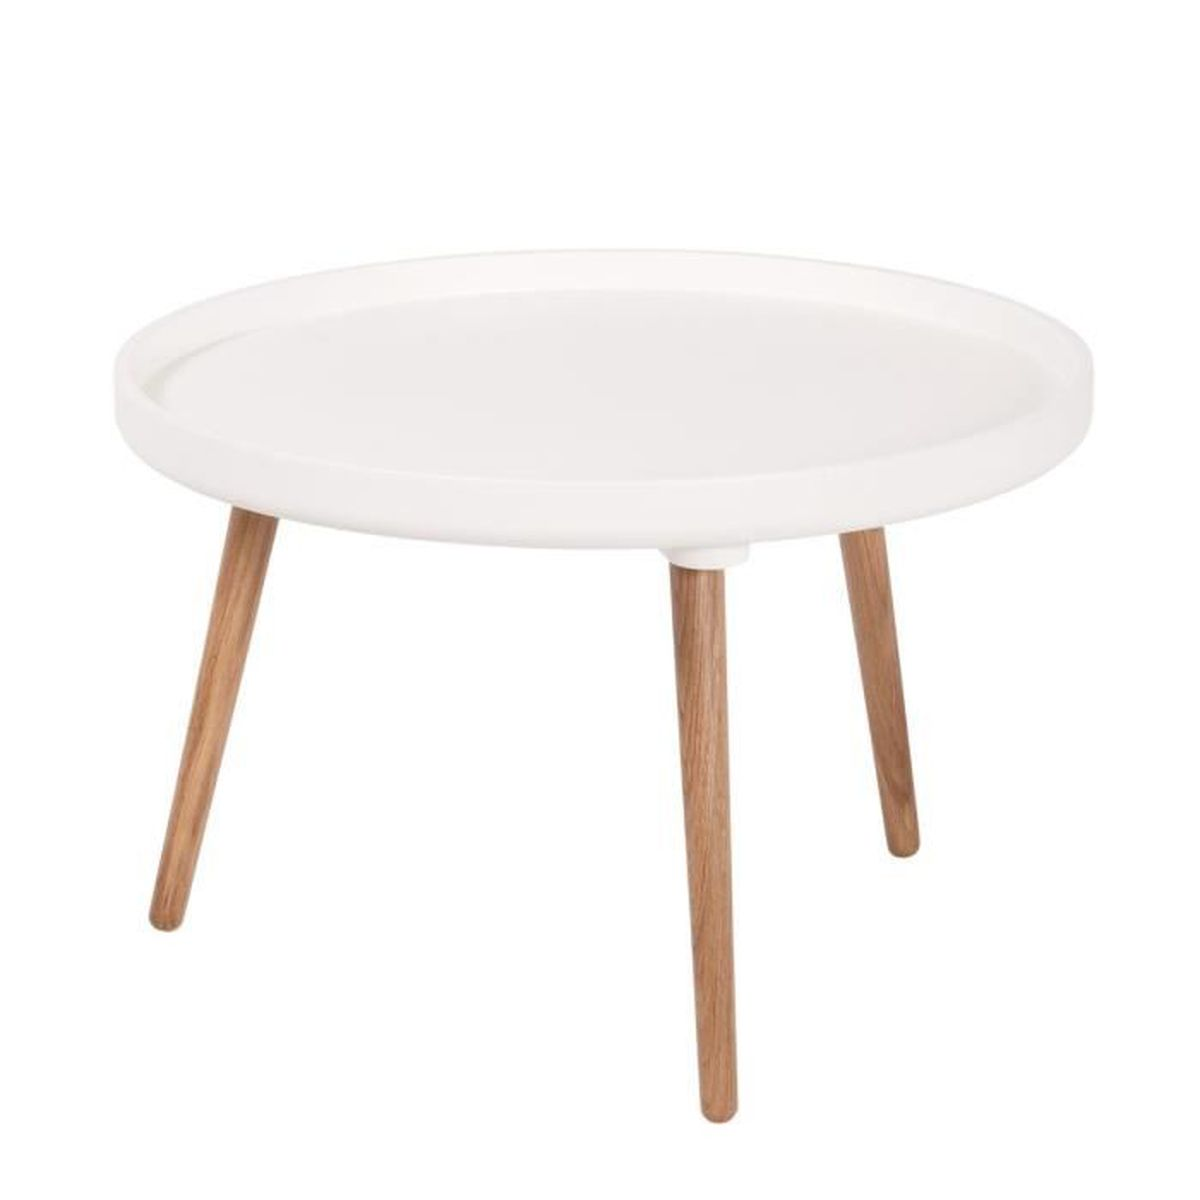 Table basse ronde 55 x h35cm kompass couleur blanc for Table basse ronde blanc